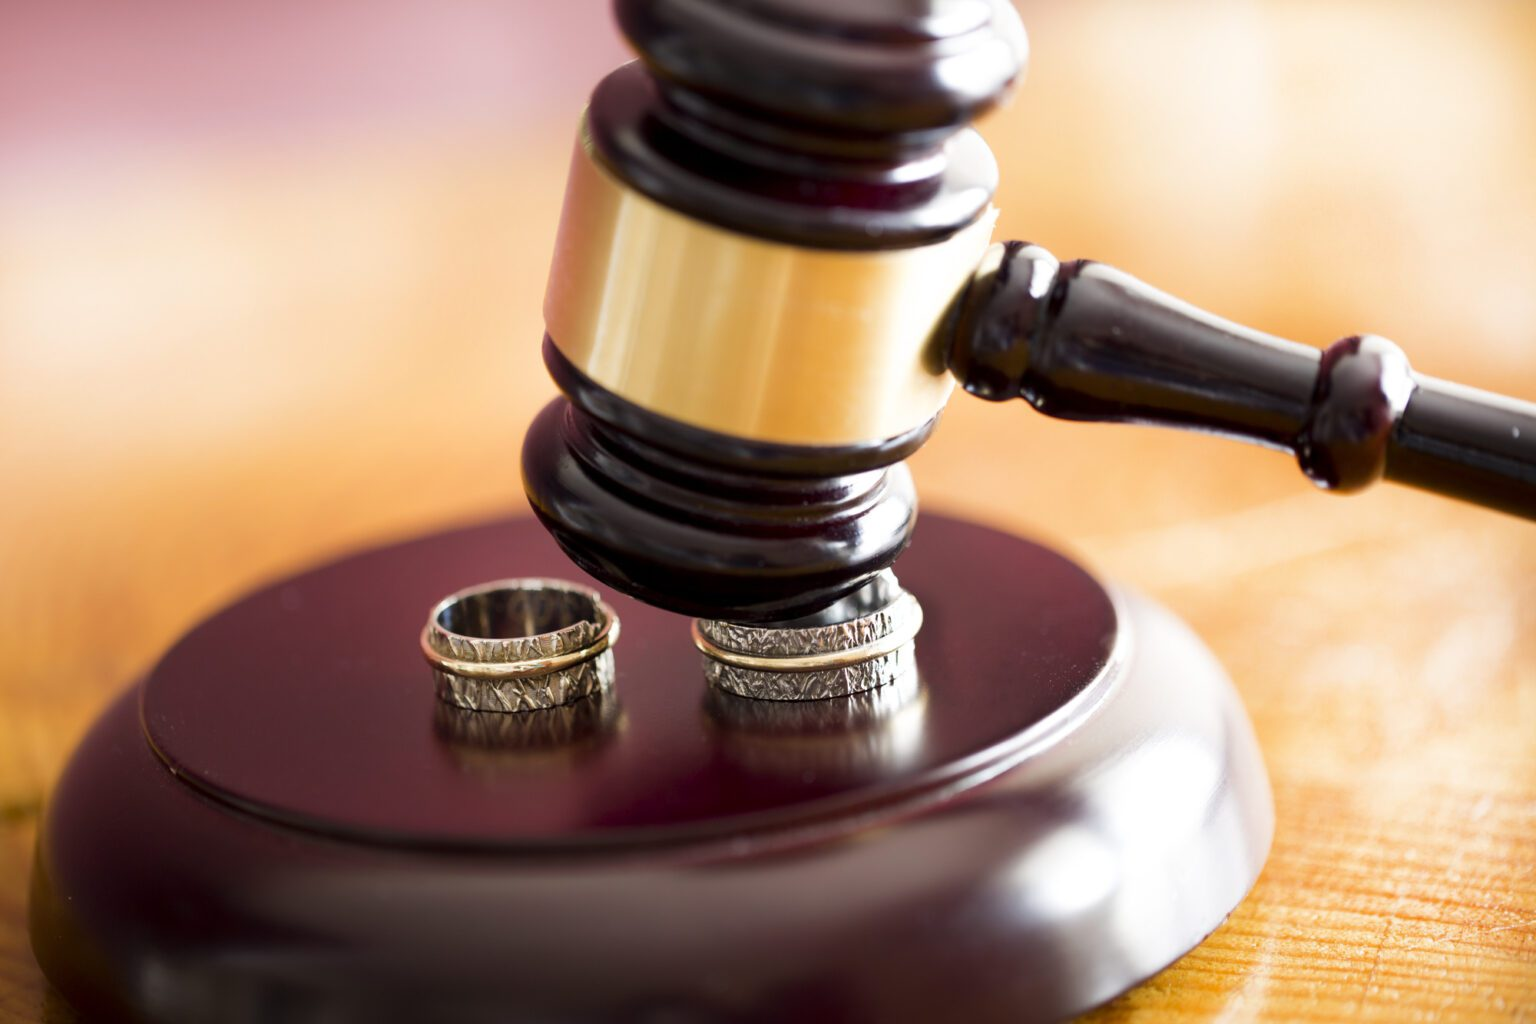 If you're considering ending your marriage, it's important to prepare for filing by learning the legal reasons for divorce in your state.